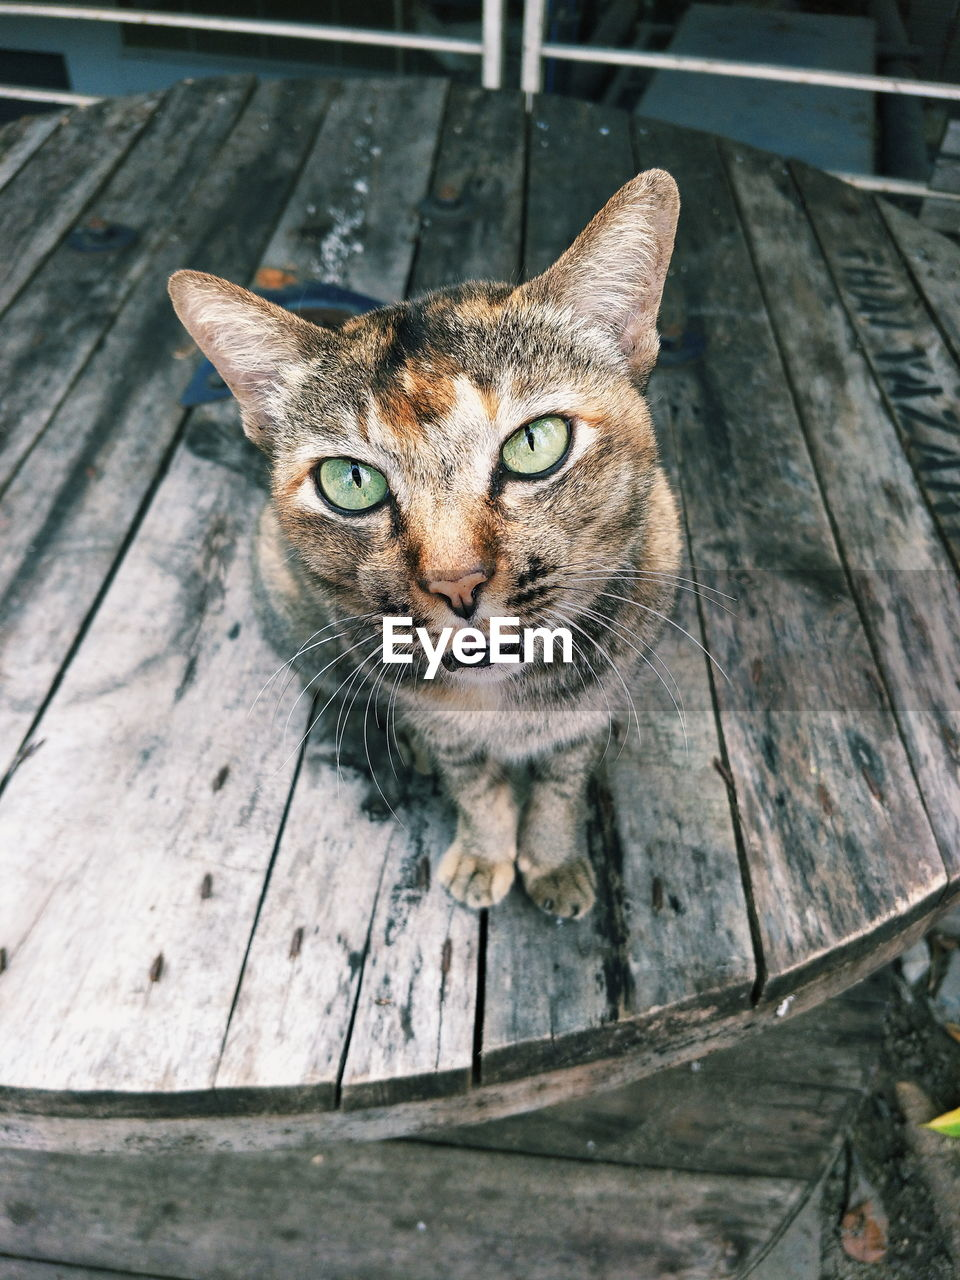 cat, domestic cat, one animal, pets, animal themes, feline, domestic, mammal, animal, domestic animals, portrait, looking at camera, wood - material, vertebrate, no people, day, whisker, high angle view, close-up, focus on foreground, animal head, tabby